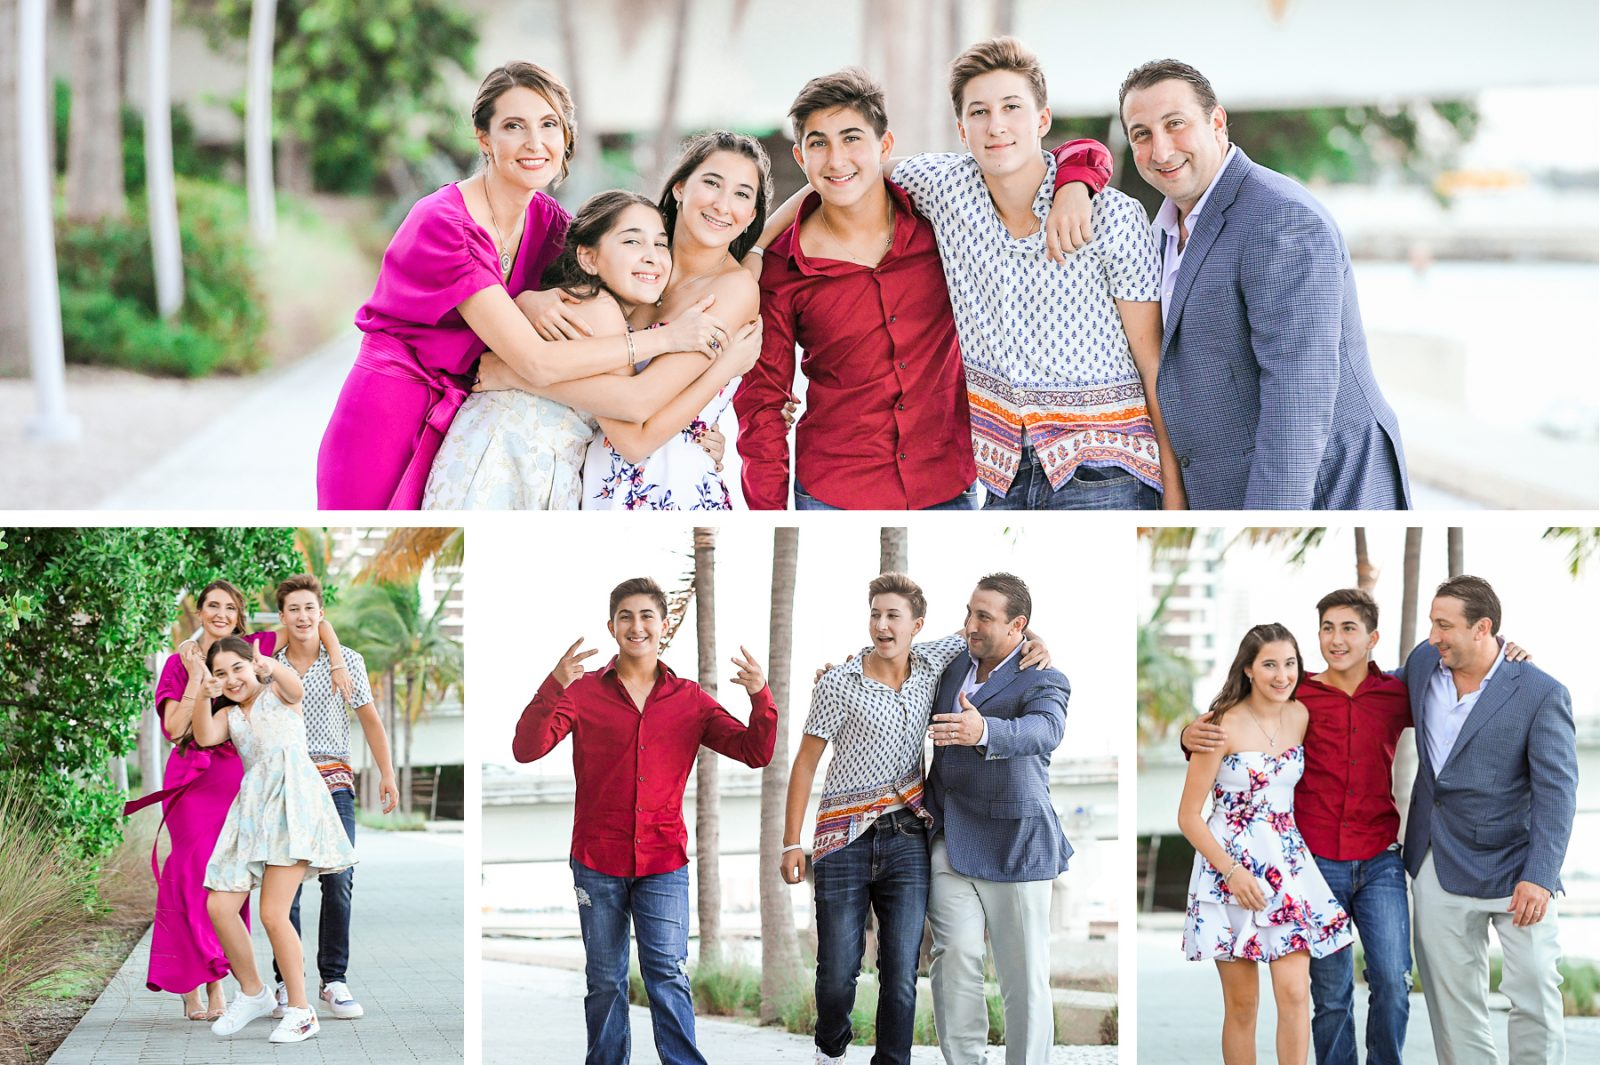 fun family portraits at Fire & Ice B'Nai Mitzvah at Perez Art Museum Miami by Domino Arts Photography